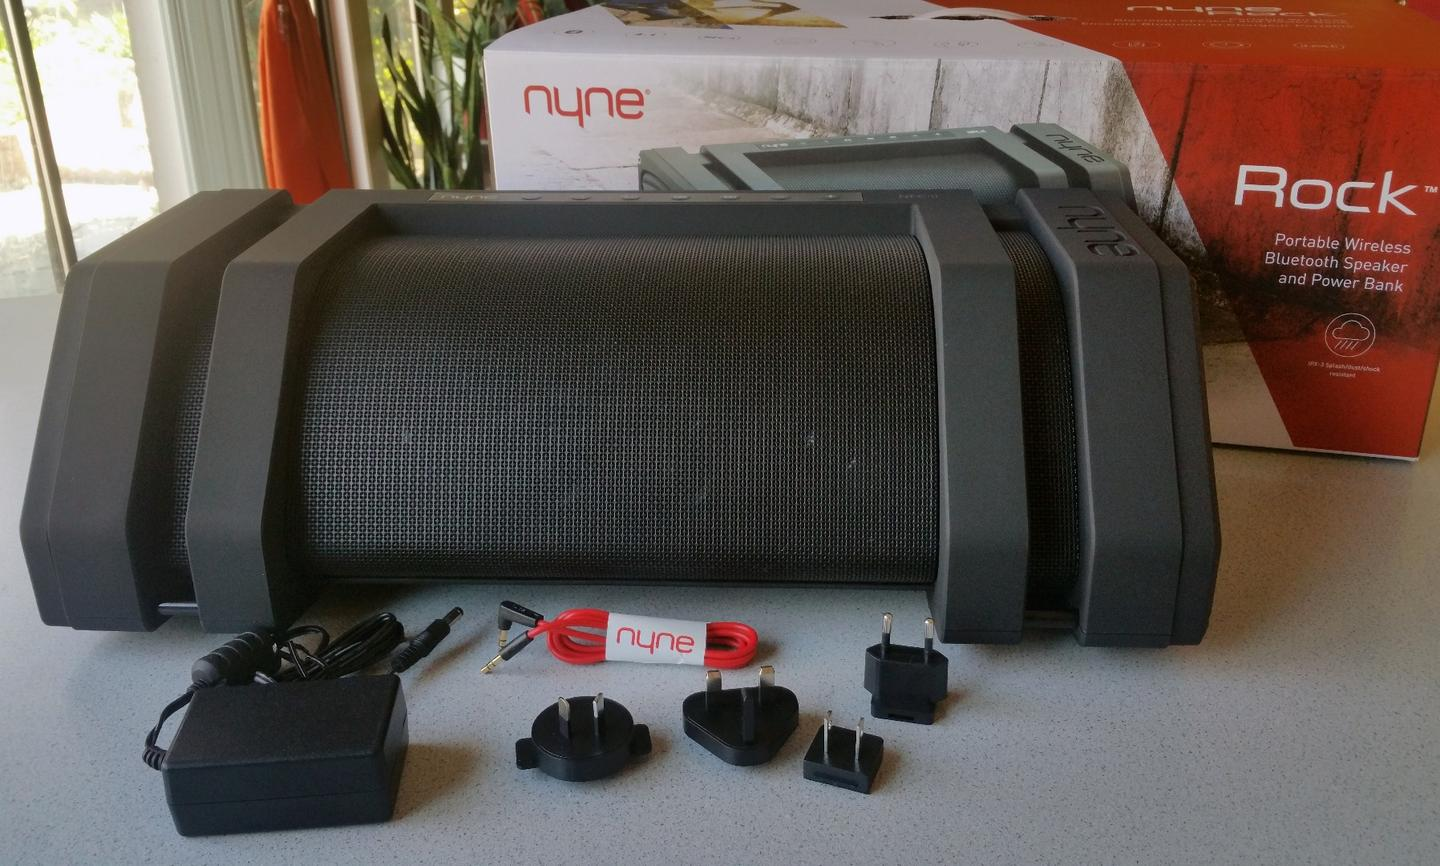 Review: Nyne Rock portable Bluetooth boombox